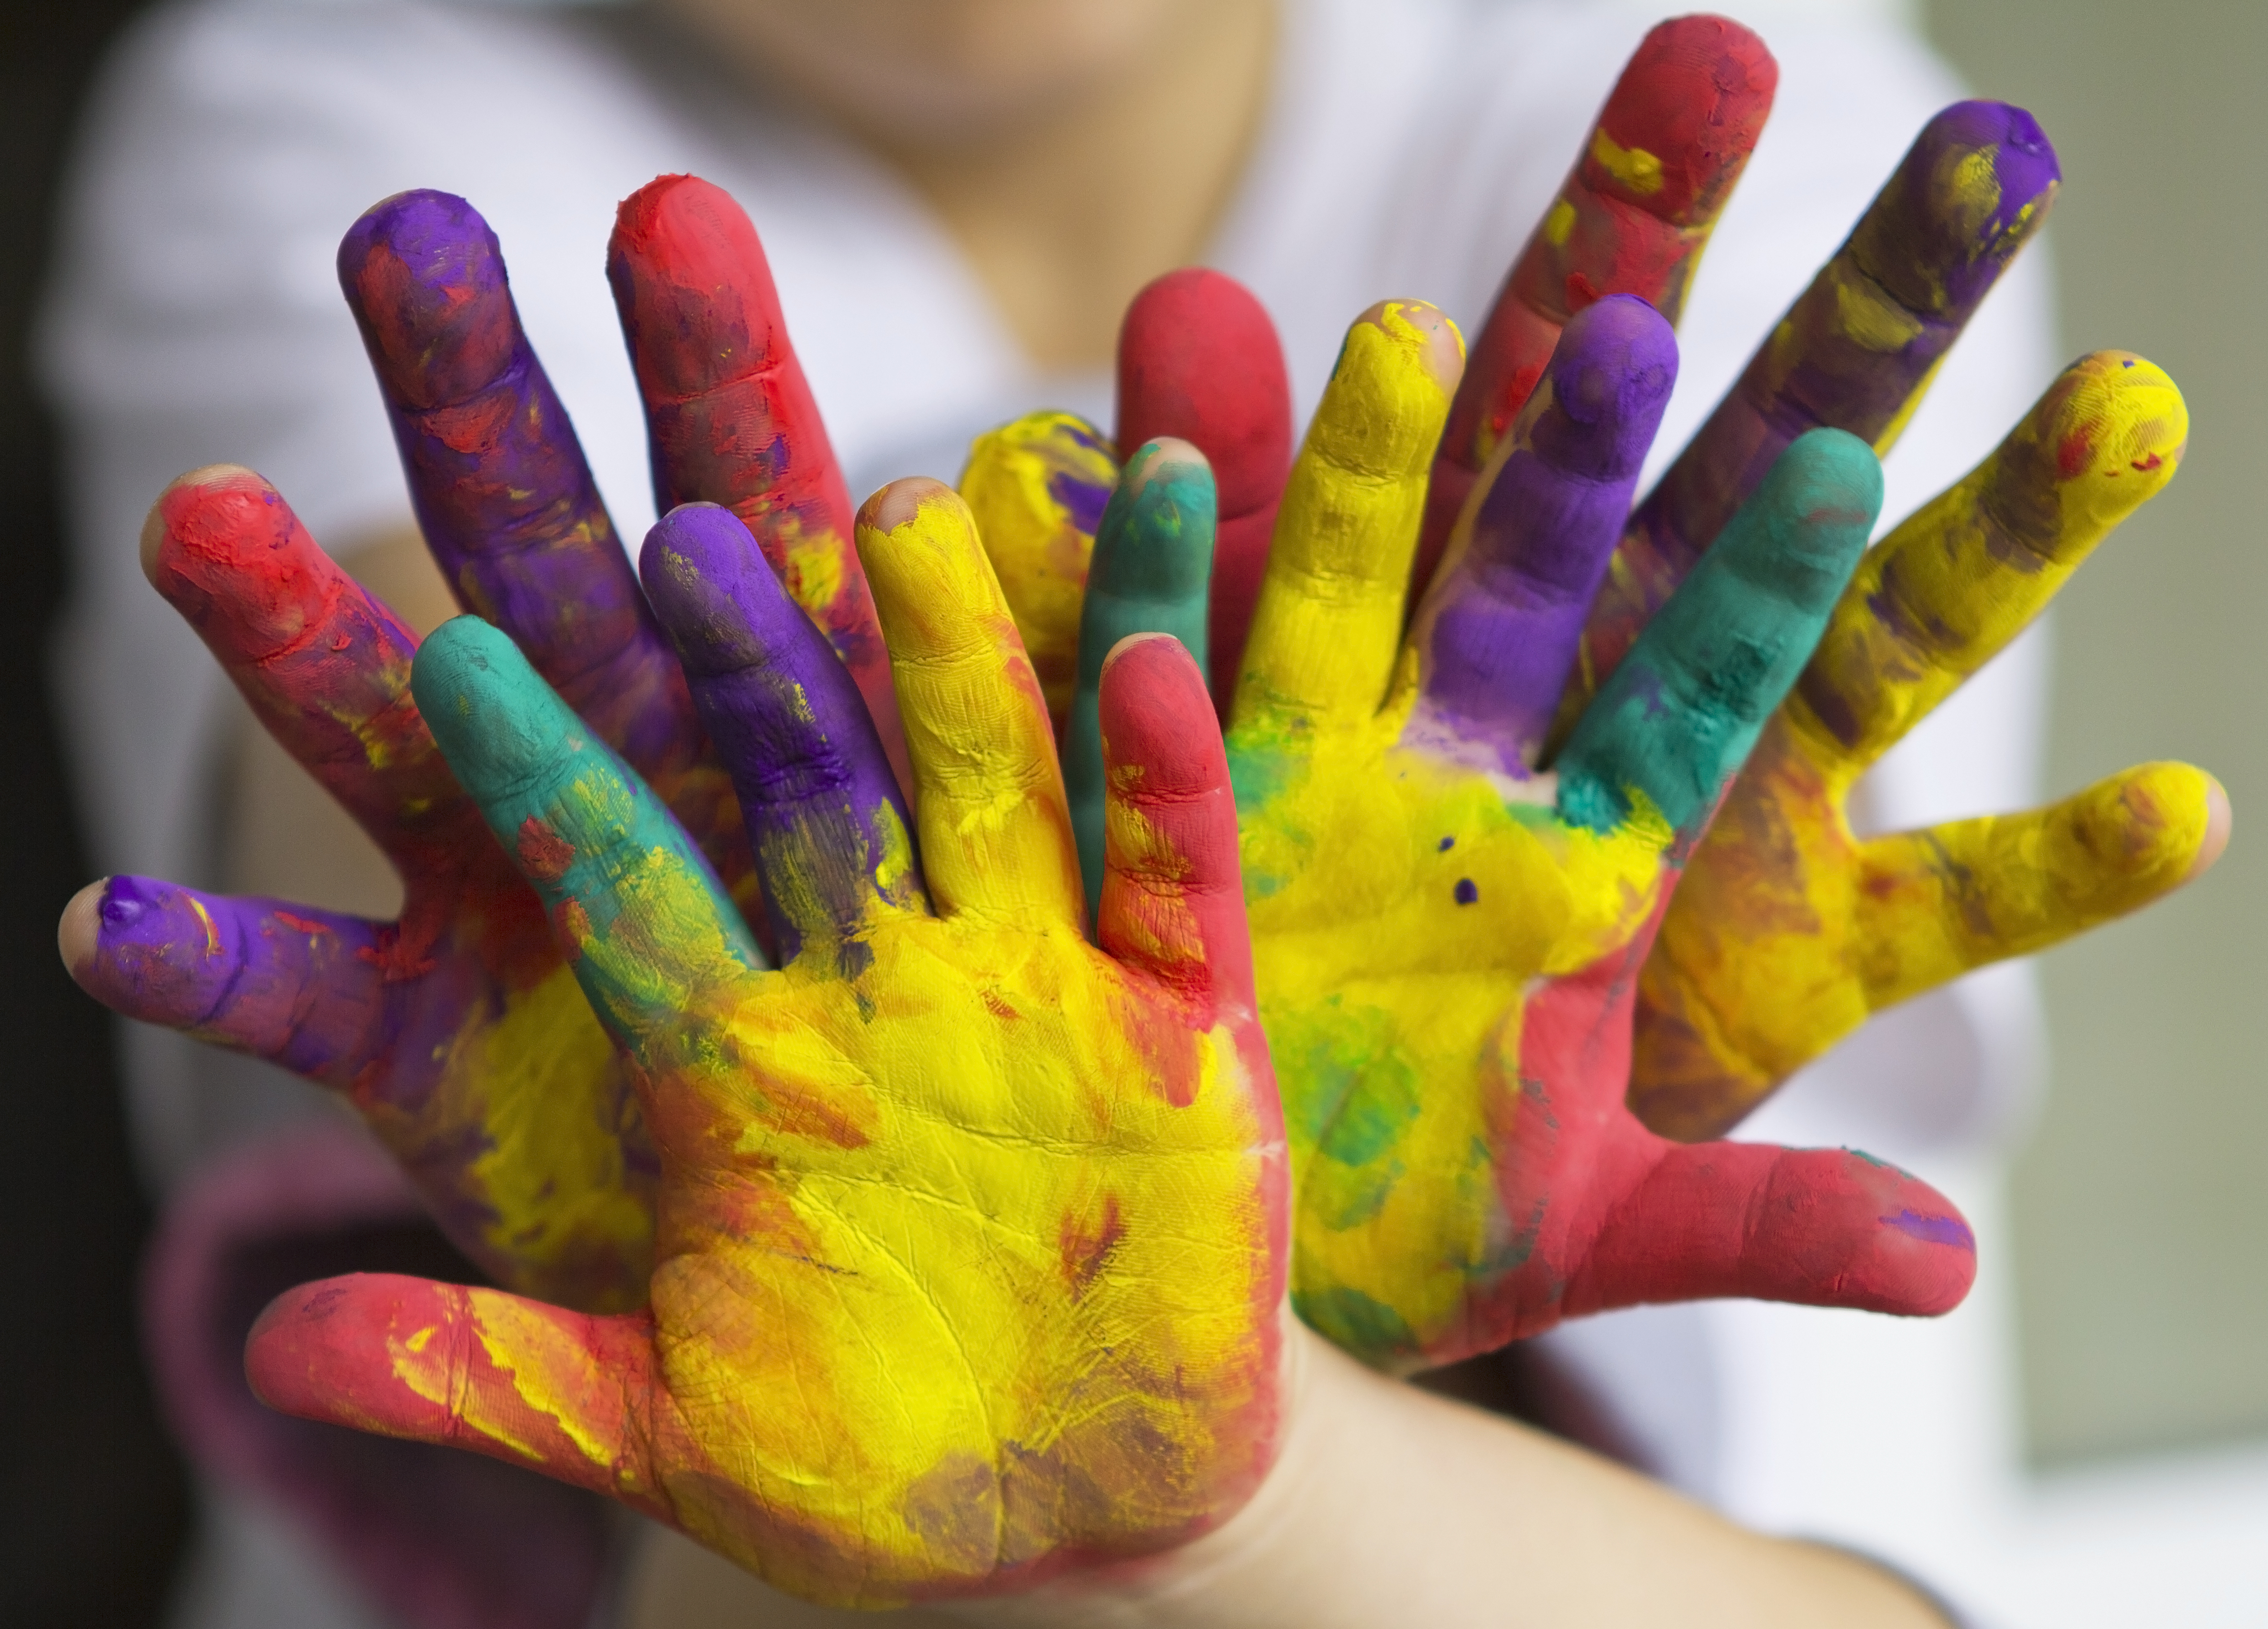 How Do Bright Colors Appeal To Kids